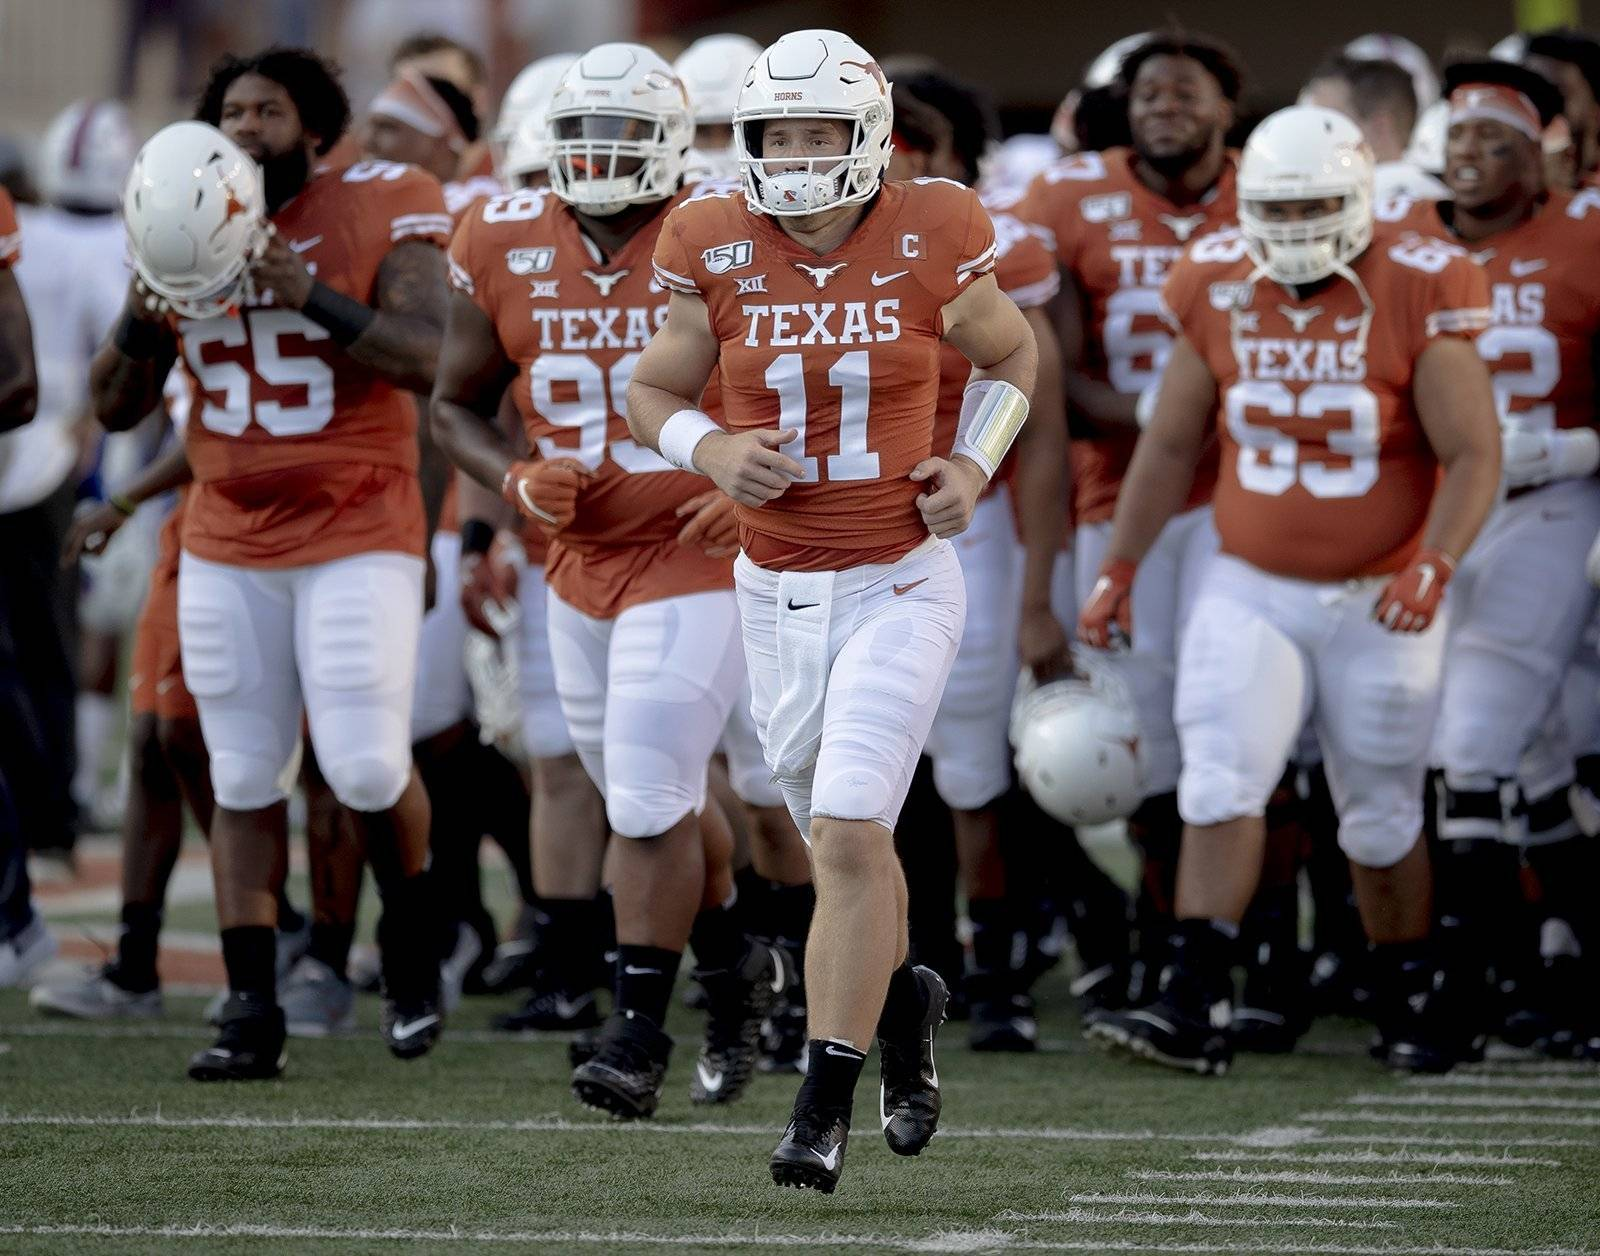 Alamo heights: Texas headed to Alamo Bowl to face No. 11 Utah on New Year's Eve